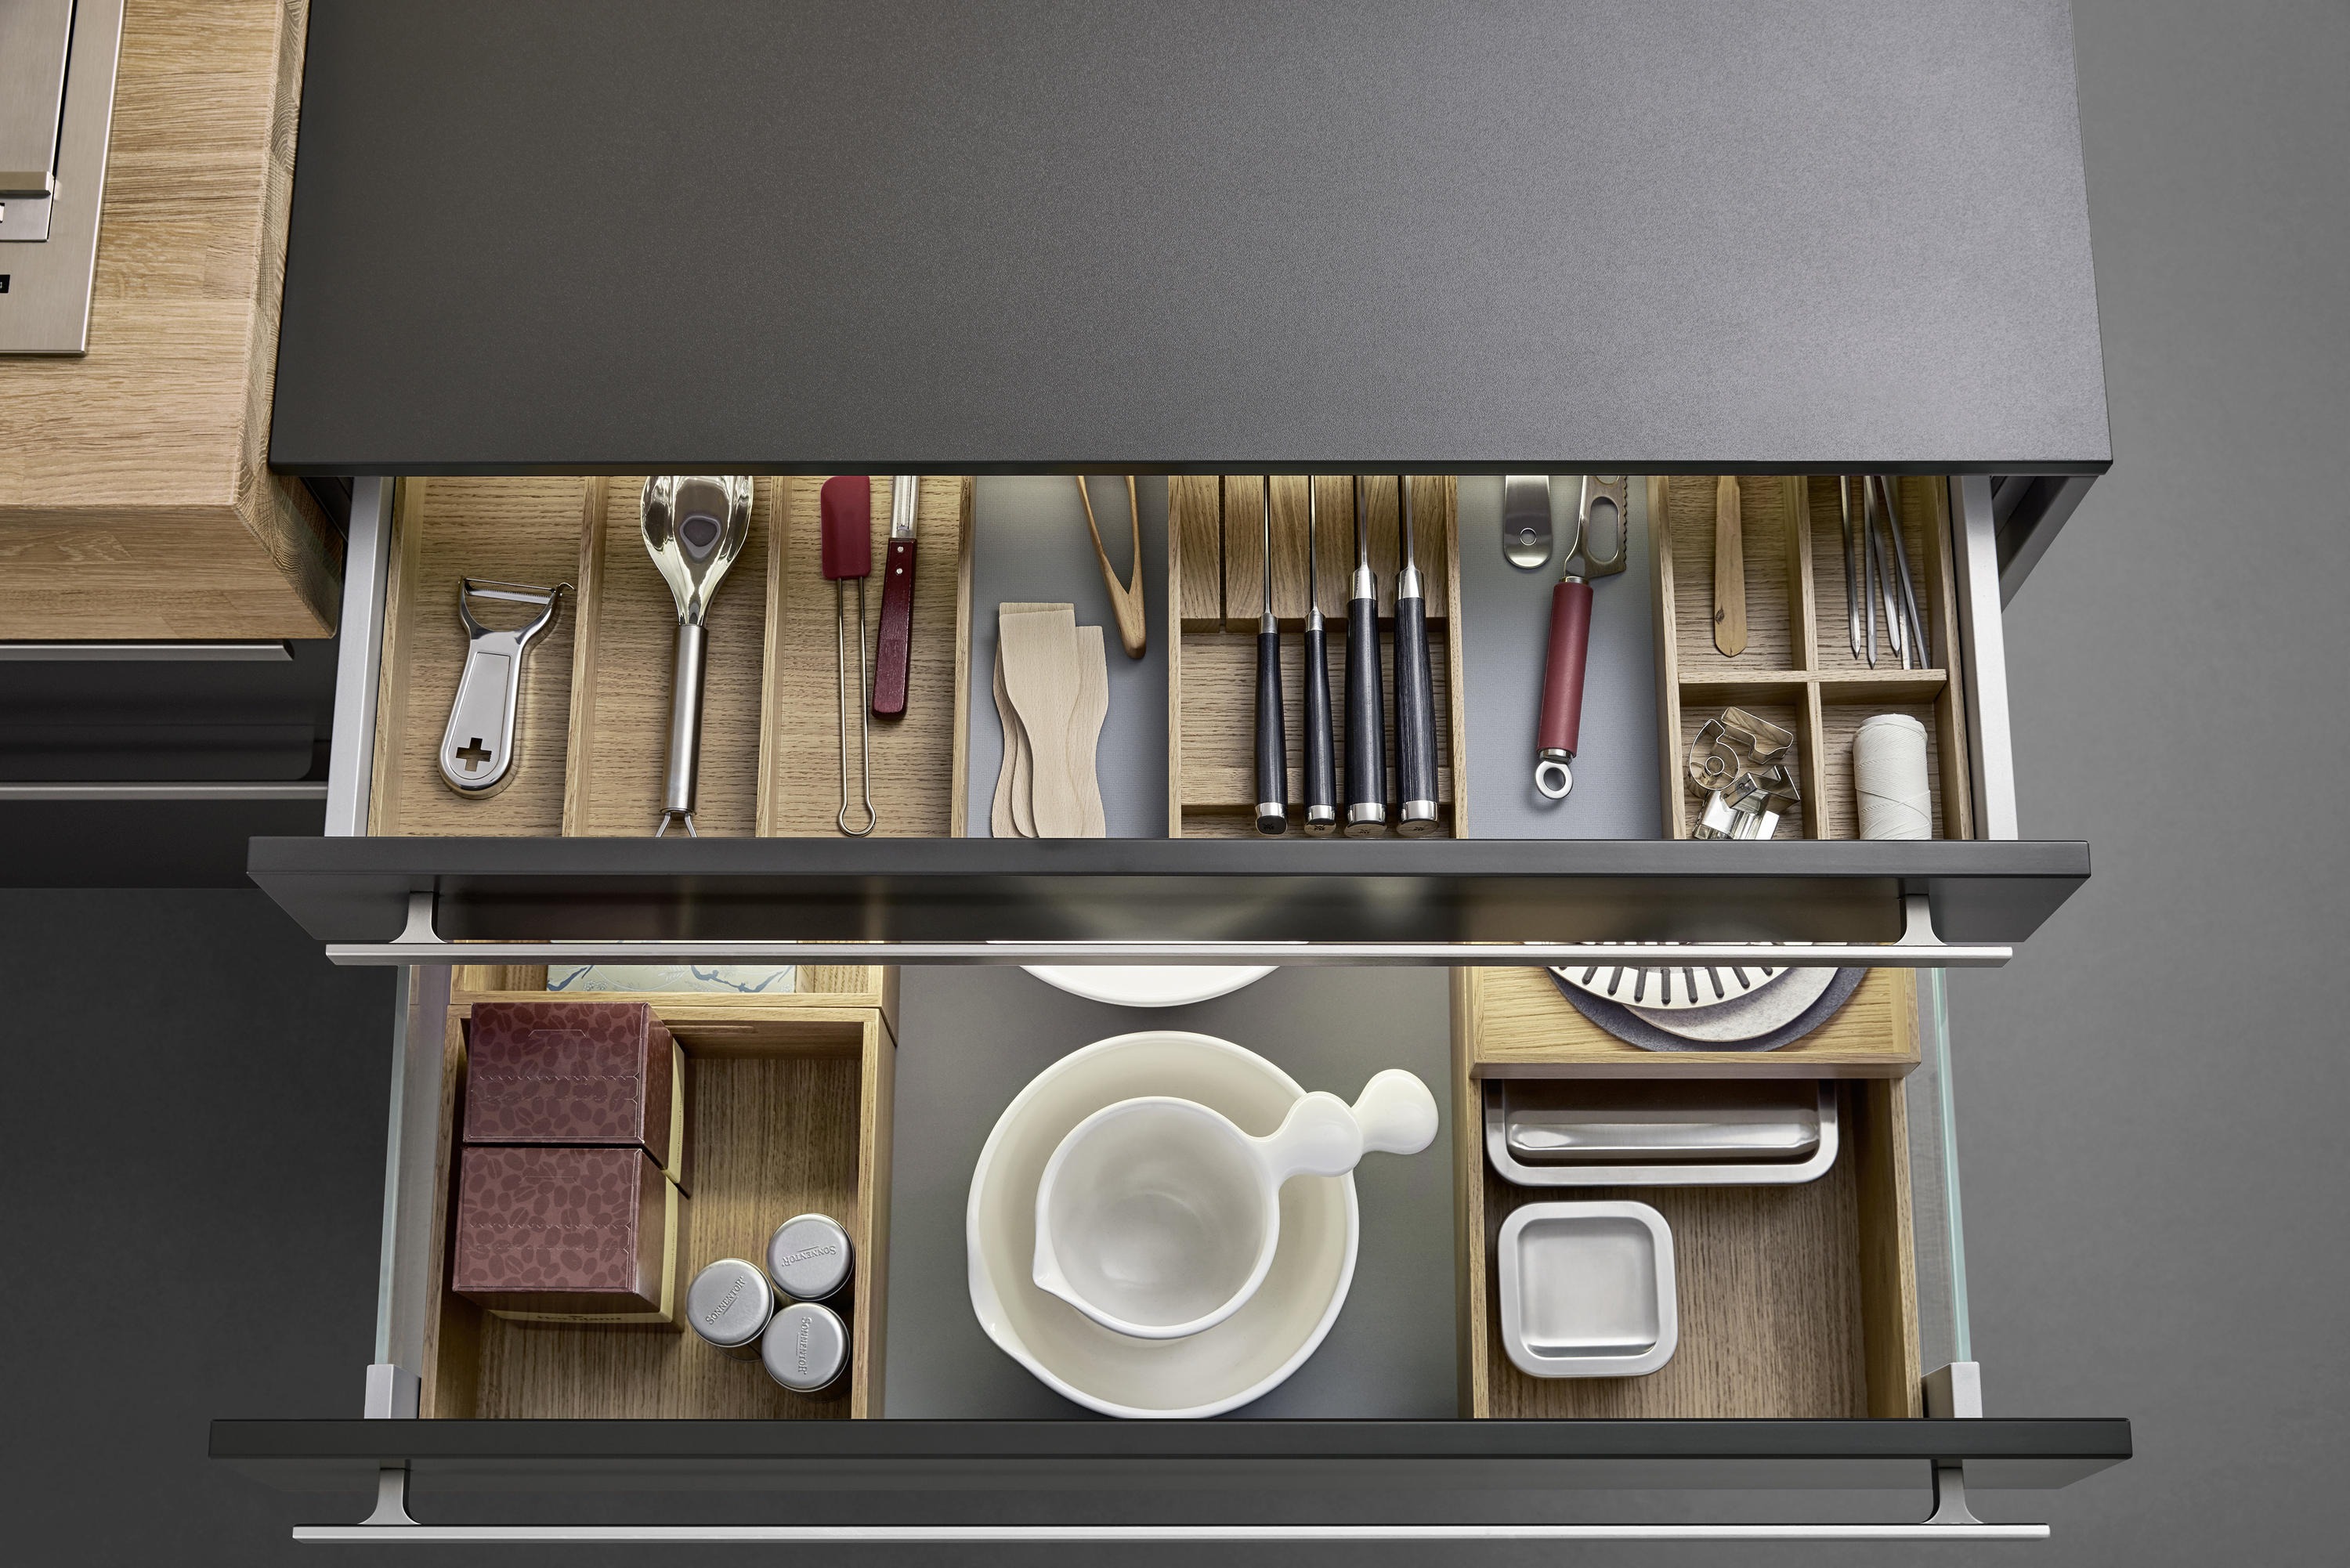 l box kitchen organization from leicht k chen ag. Black Bedroom Furniture Sets. Home Design Ideas